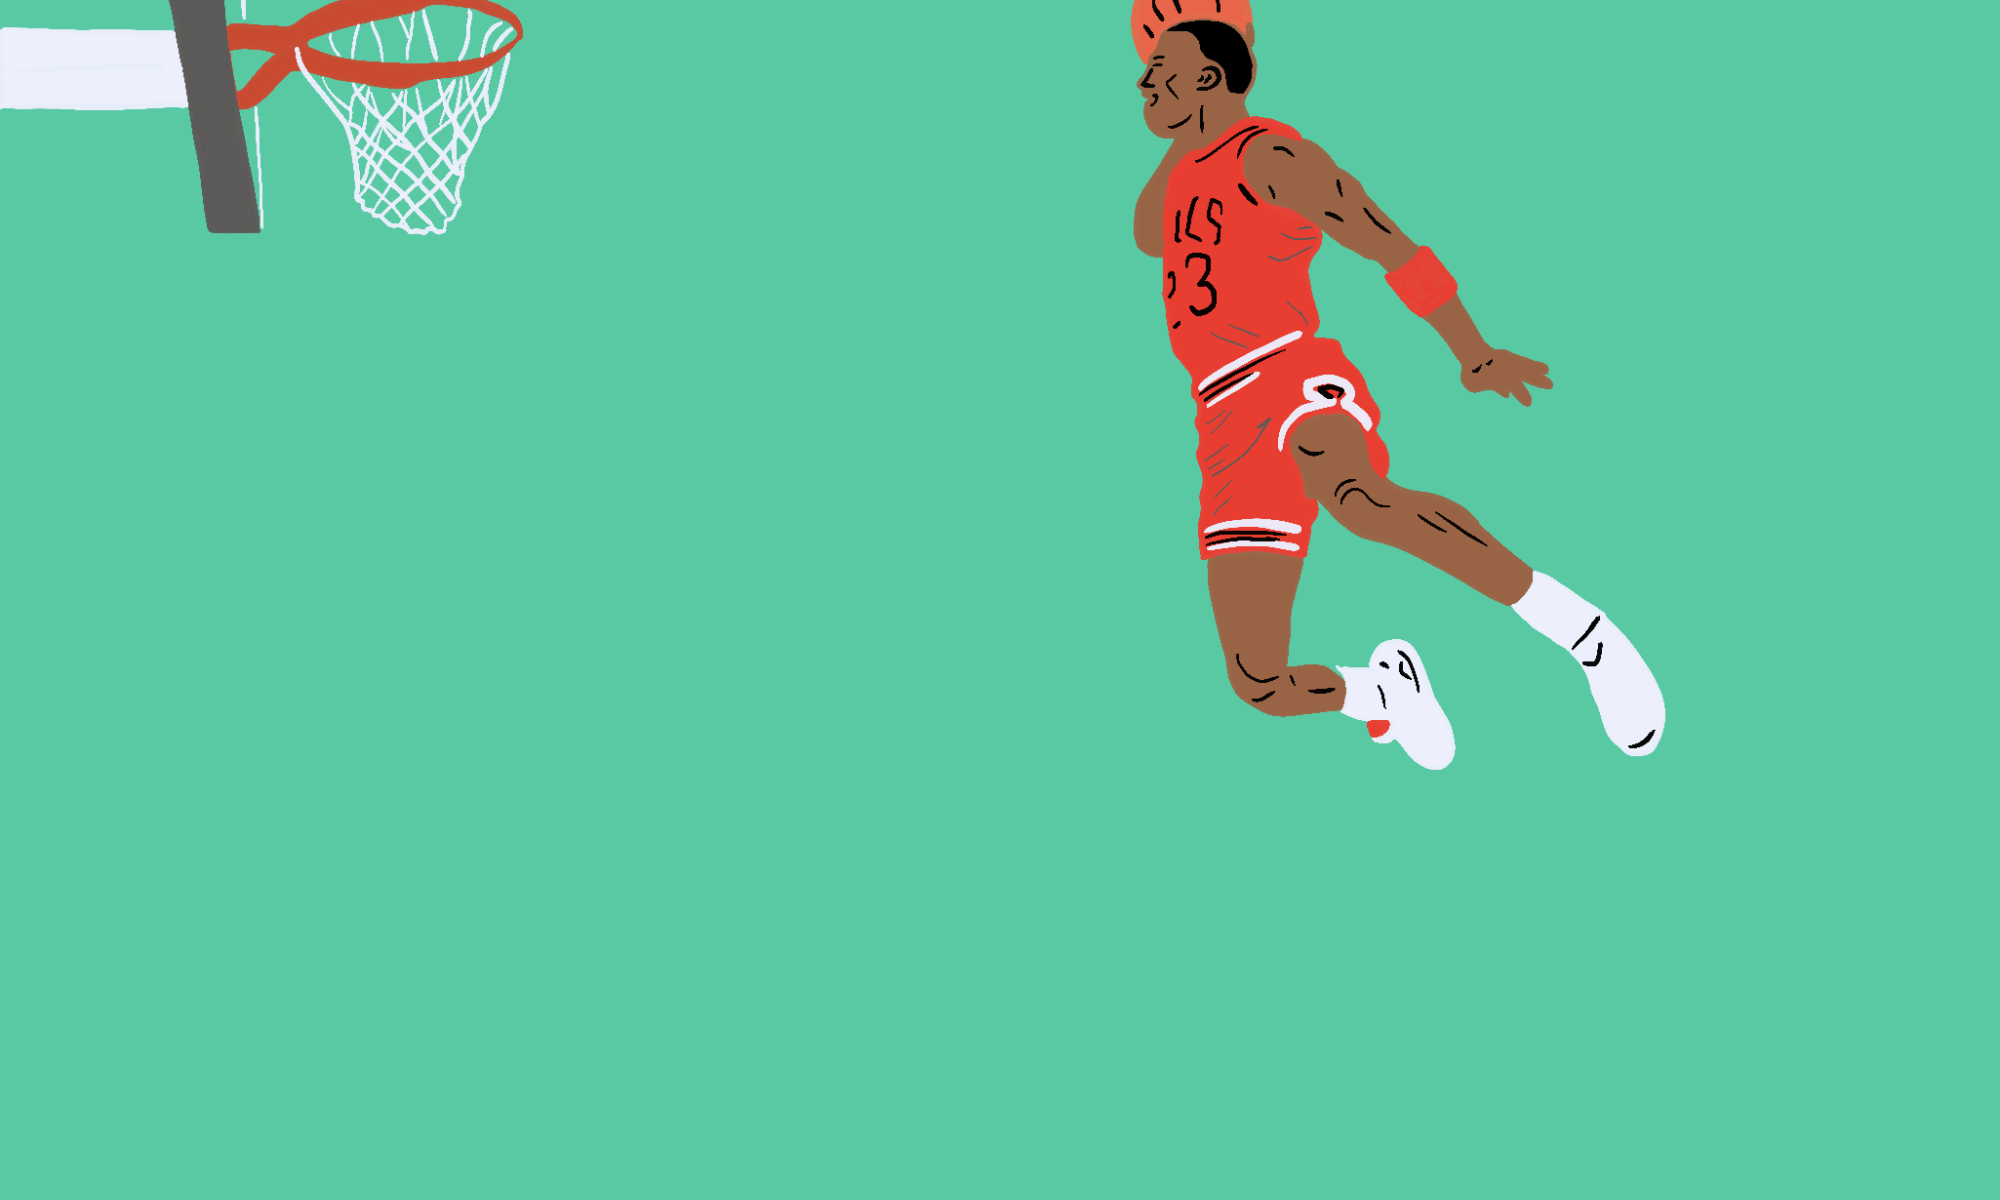 Creatives! Rise above the noise like Michael Jordan.